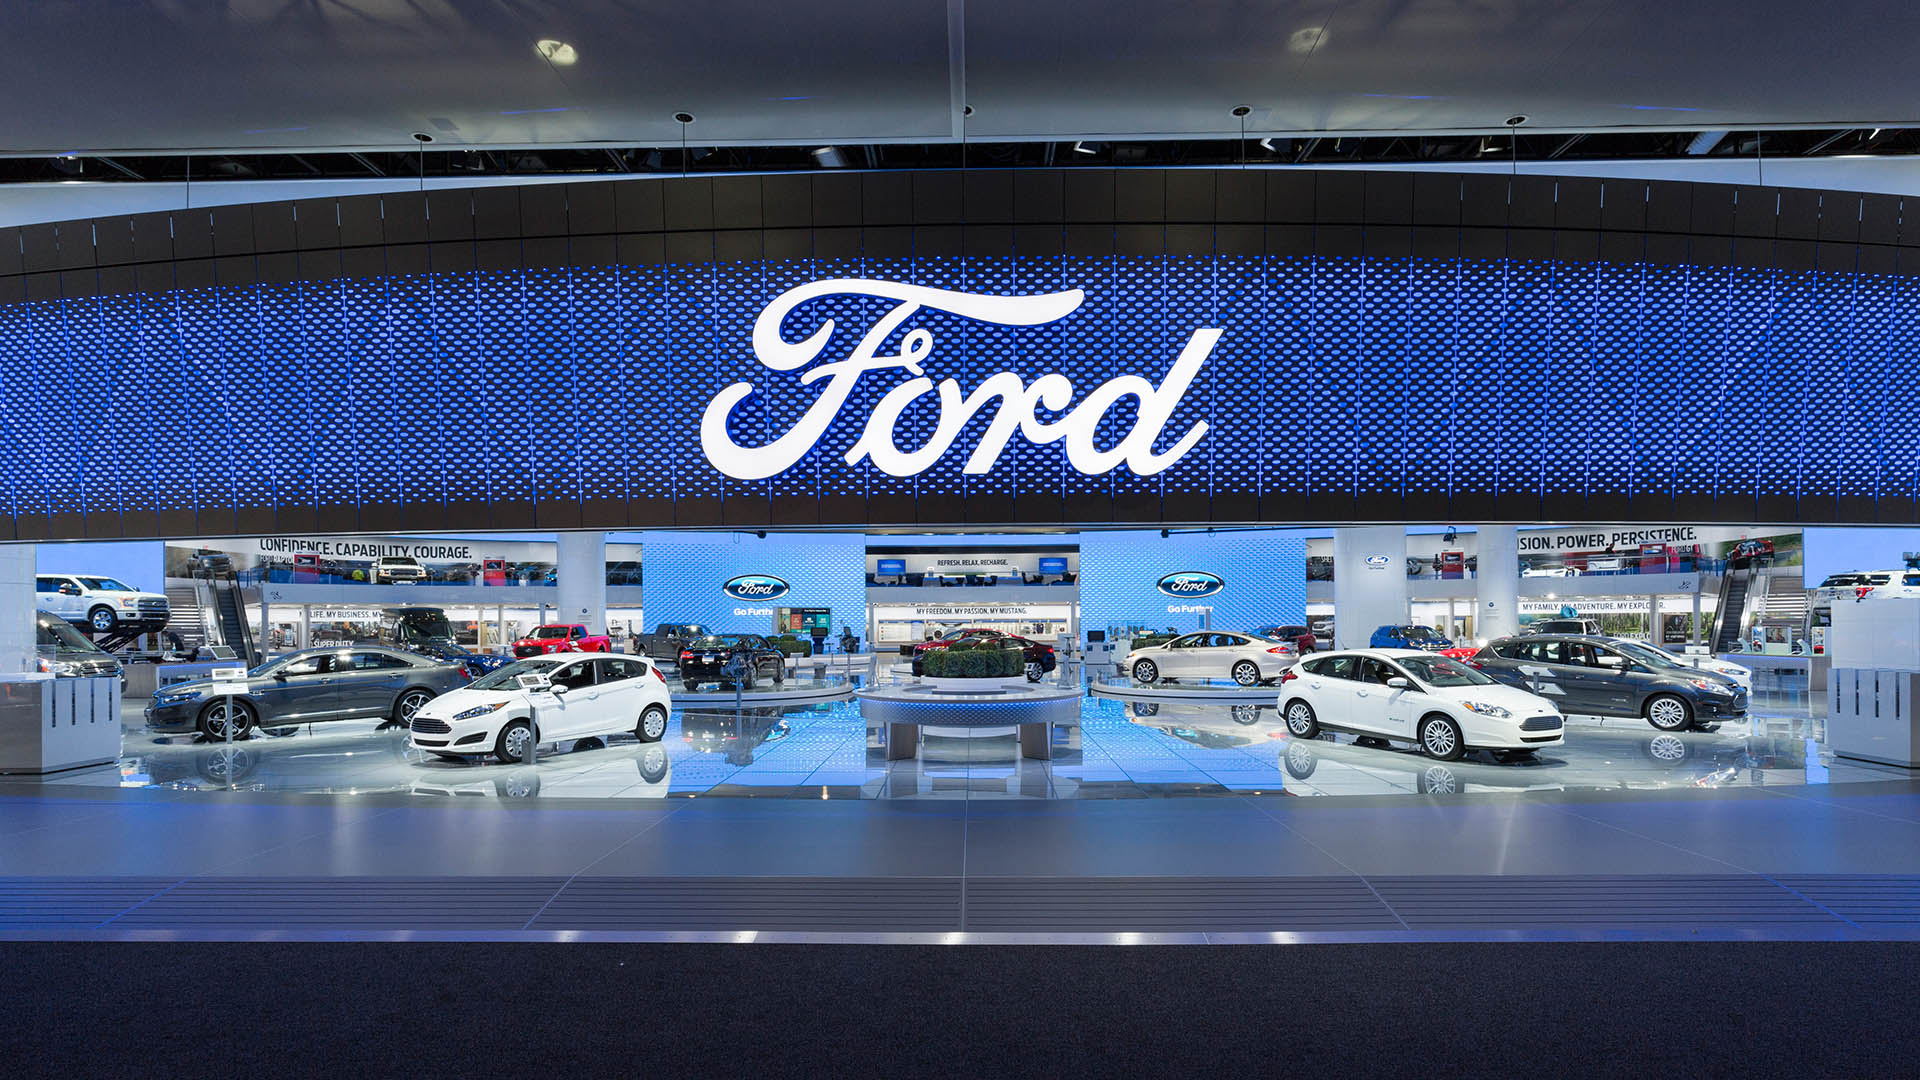 Ford motor company ewi worldwide for Ford motor company news headlines